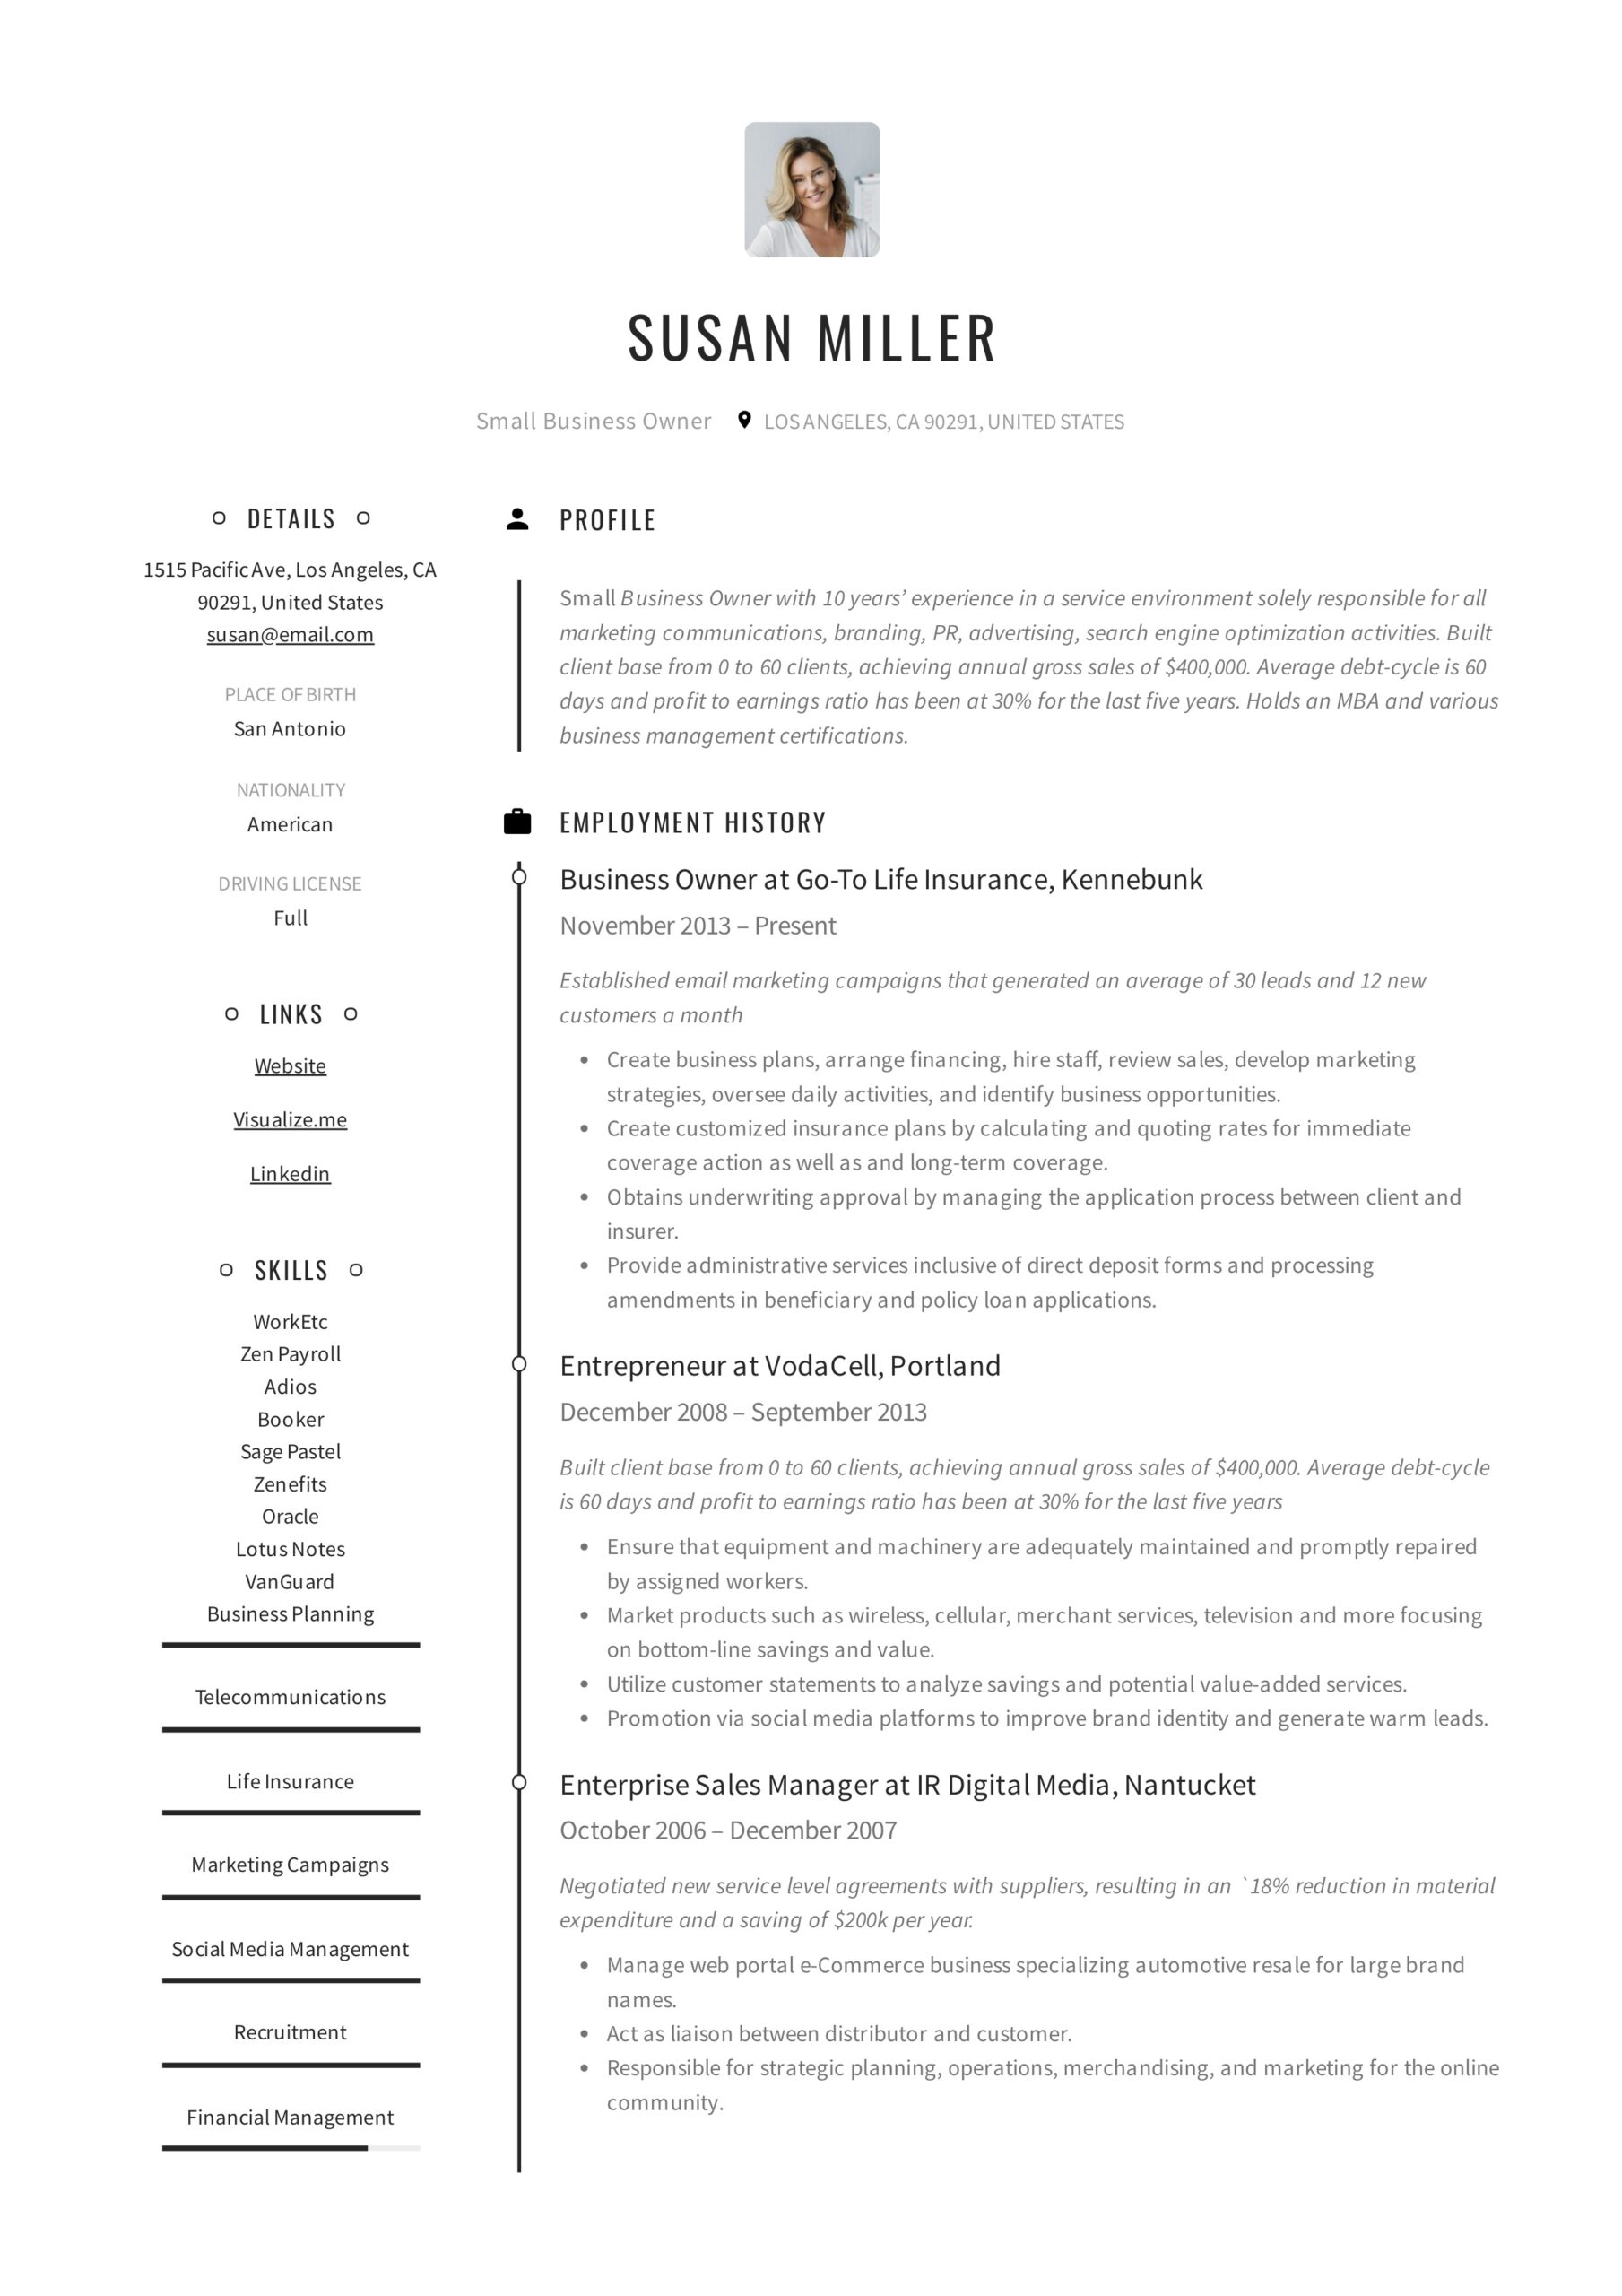 small business owner resume guide examples pdf entrepreneur job description for example Resume Entrepreneur Job Description For Resume